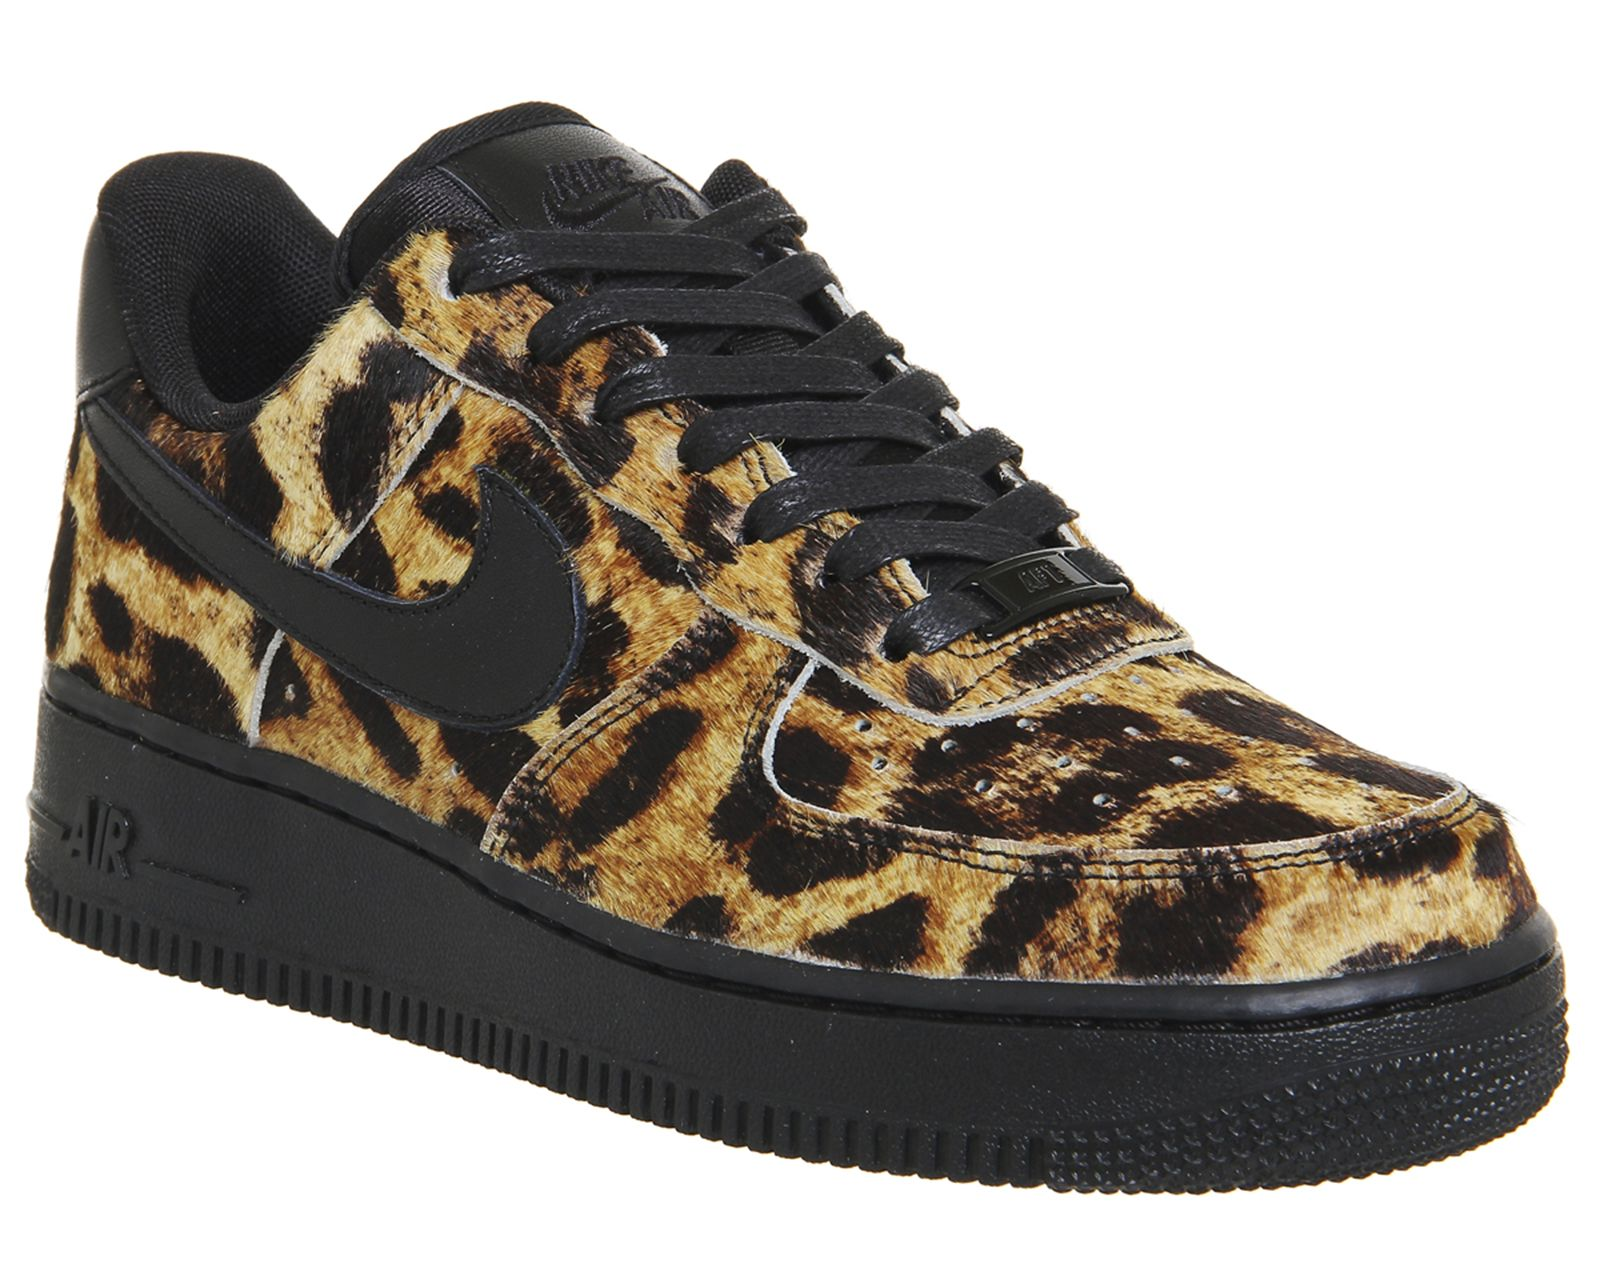 Nike air force 1 mid premium thanksgiving sold out - Nike Air Force 1 Lo Leopard Black Sail